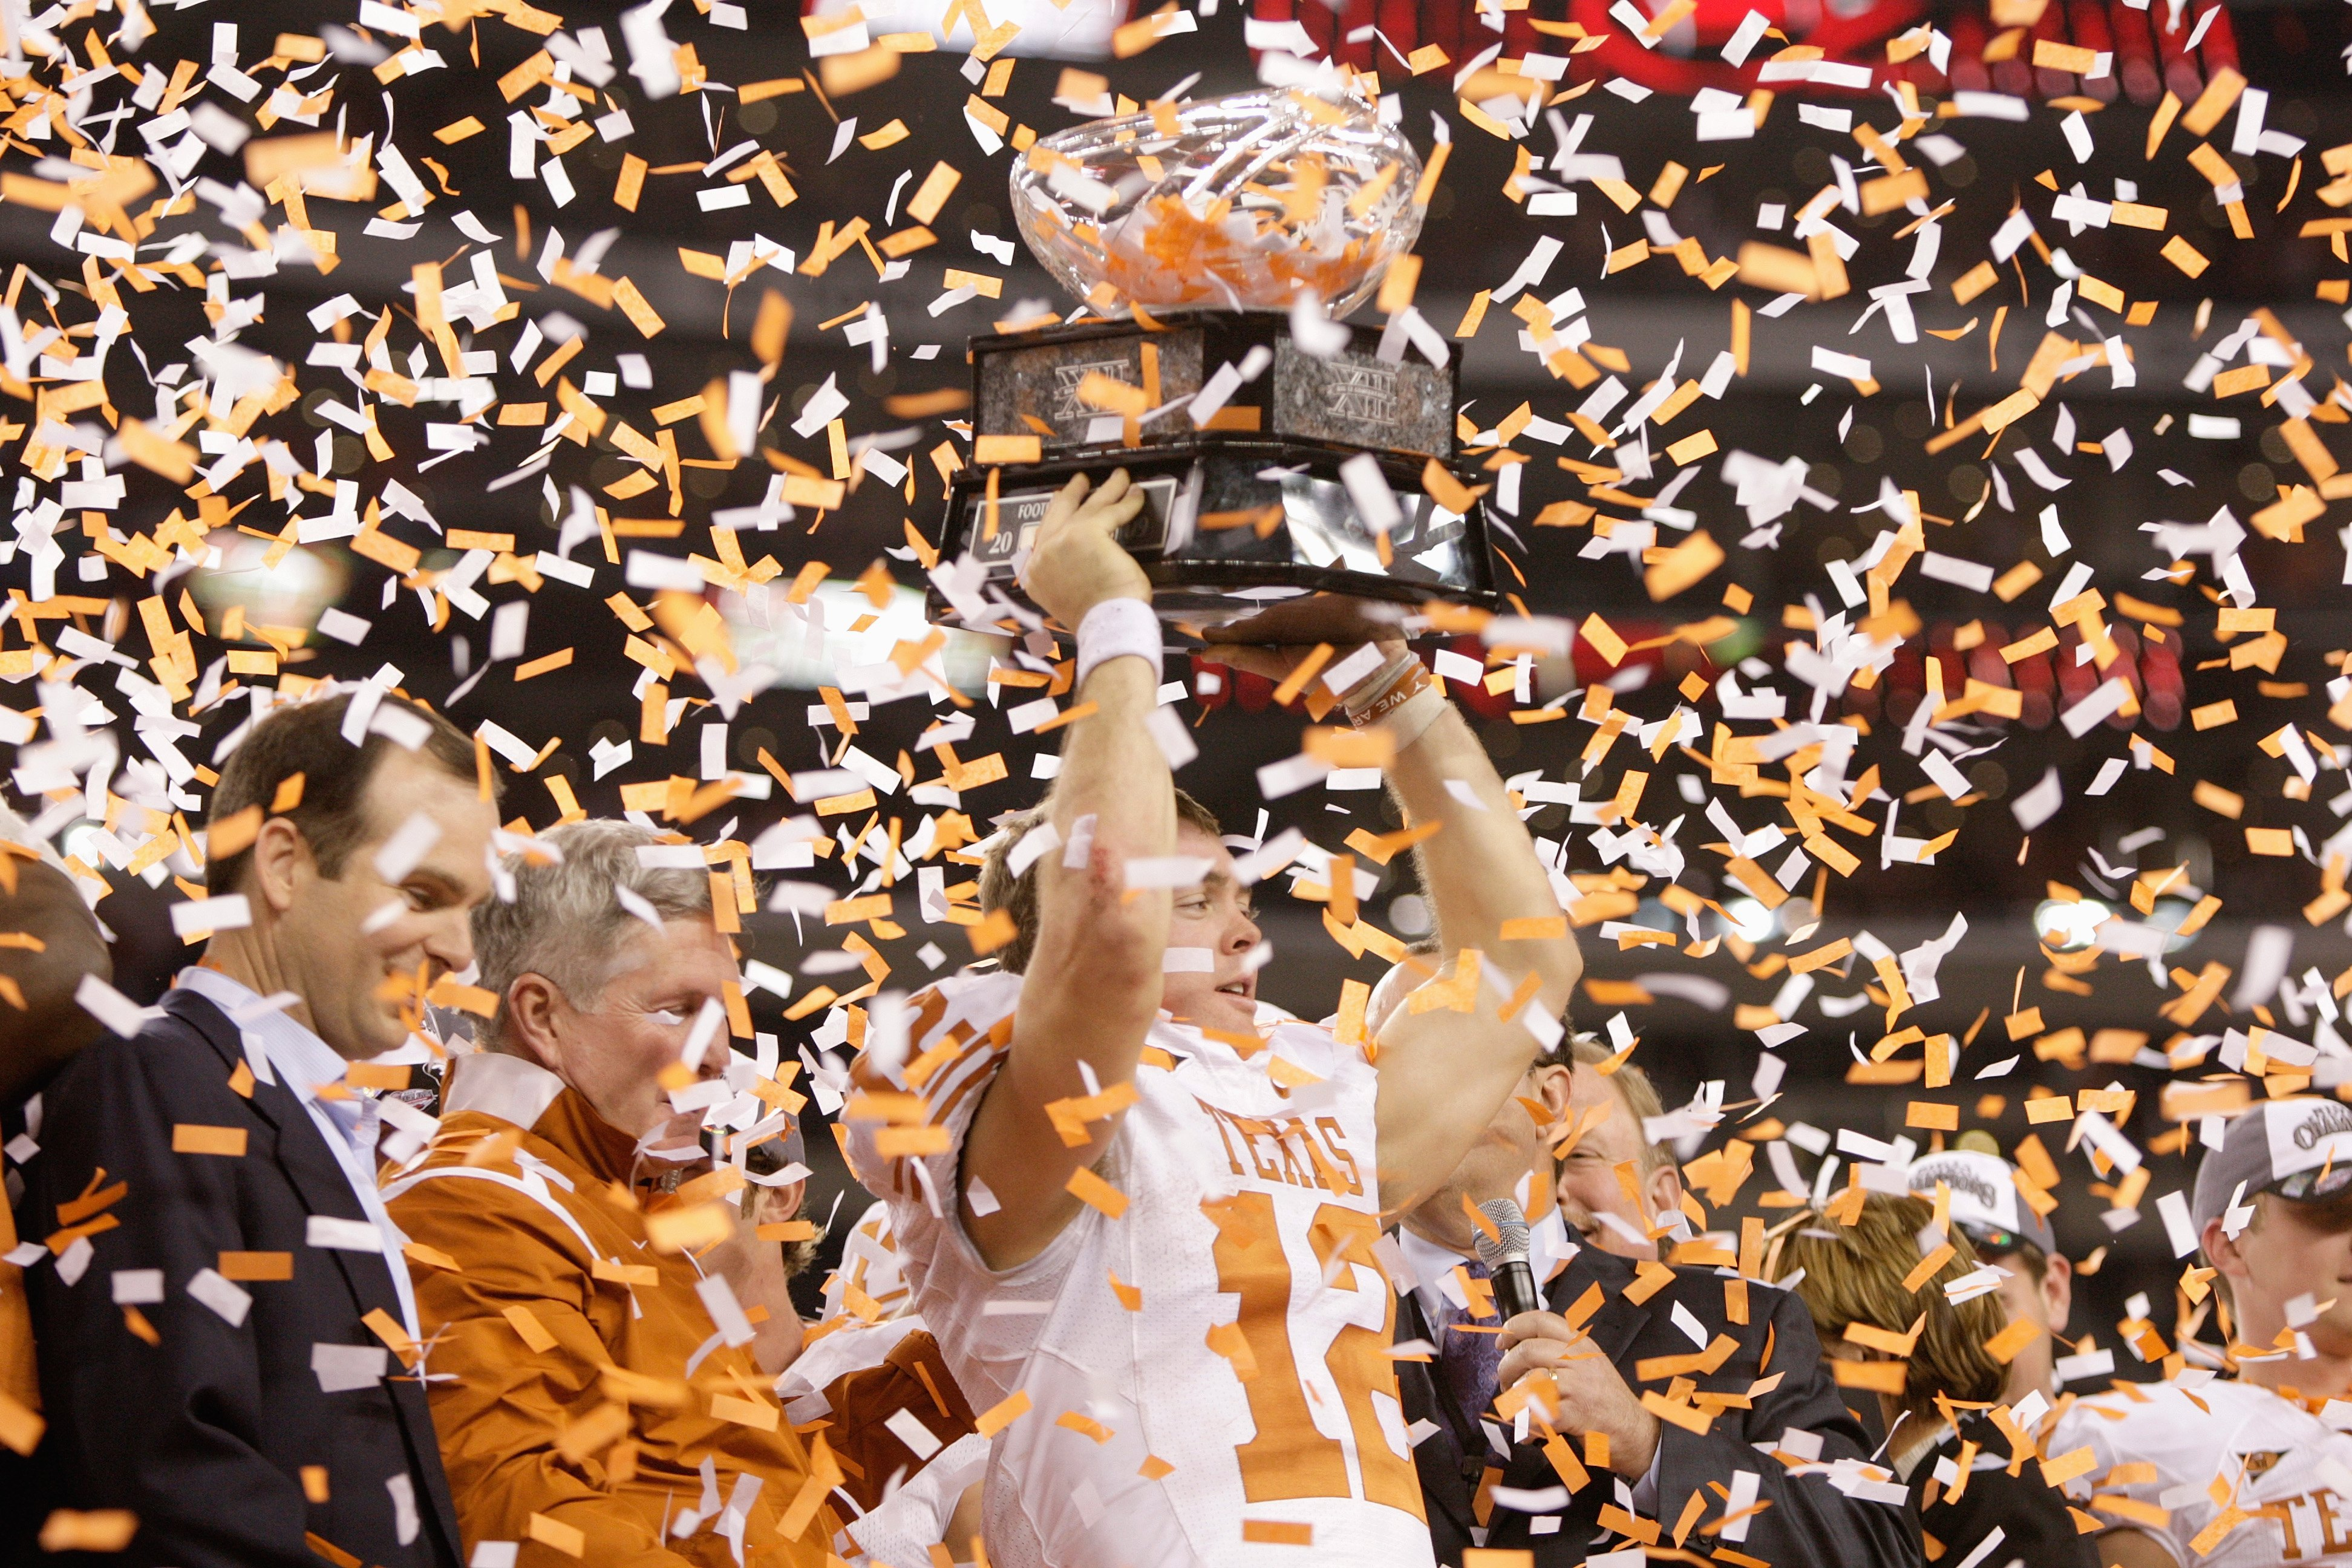 ARLINGTON, TX - DECEMBER 5: Colt McCoy #12 of the Texas Longhorns lifts the trophy after winning the Big 12 Football Championship game against the Nebraska Cornhuskers at Cowboys Stadium on December 5, 2009 in Arlington, Texas. (Photo by Jamie Squire/Gett